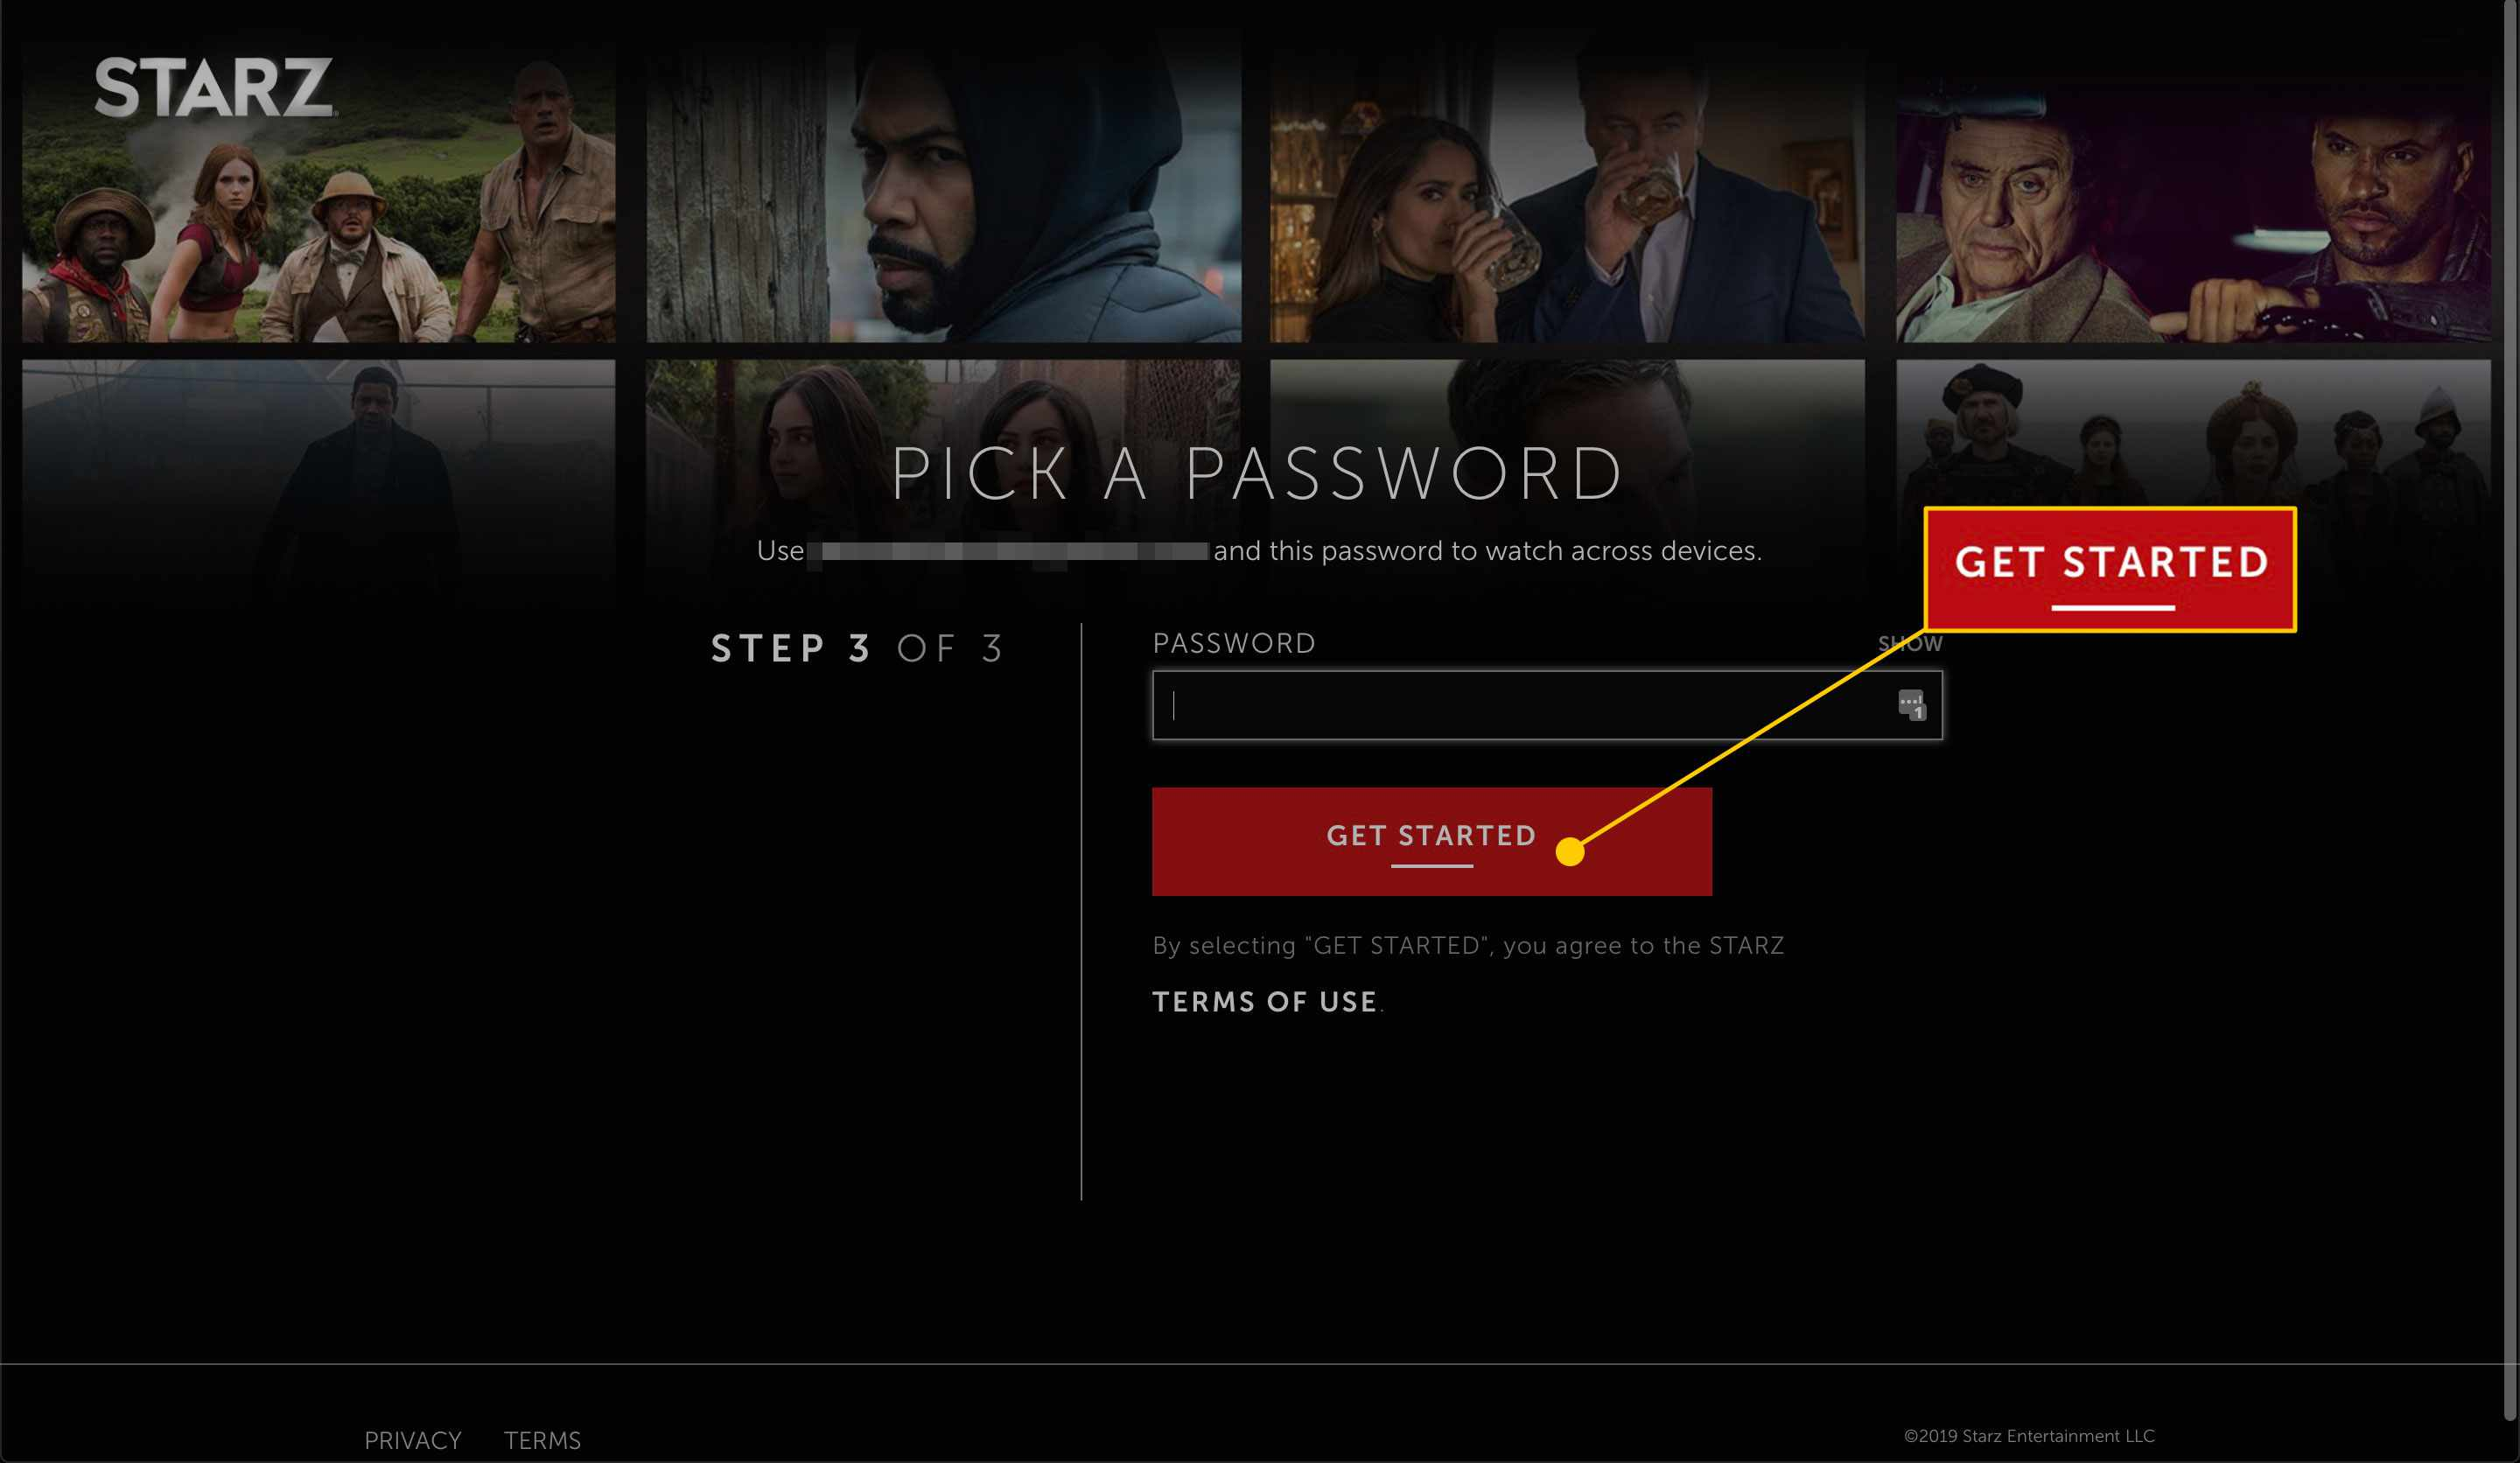 Starz account setup page with the Get Started button highlighted